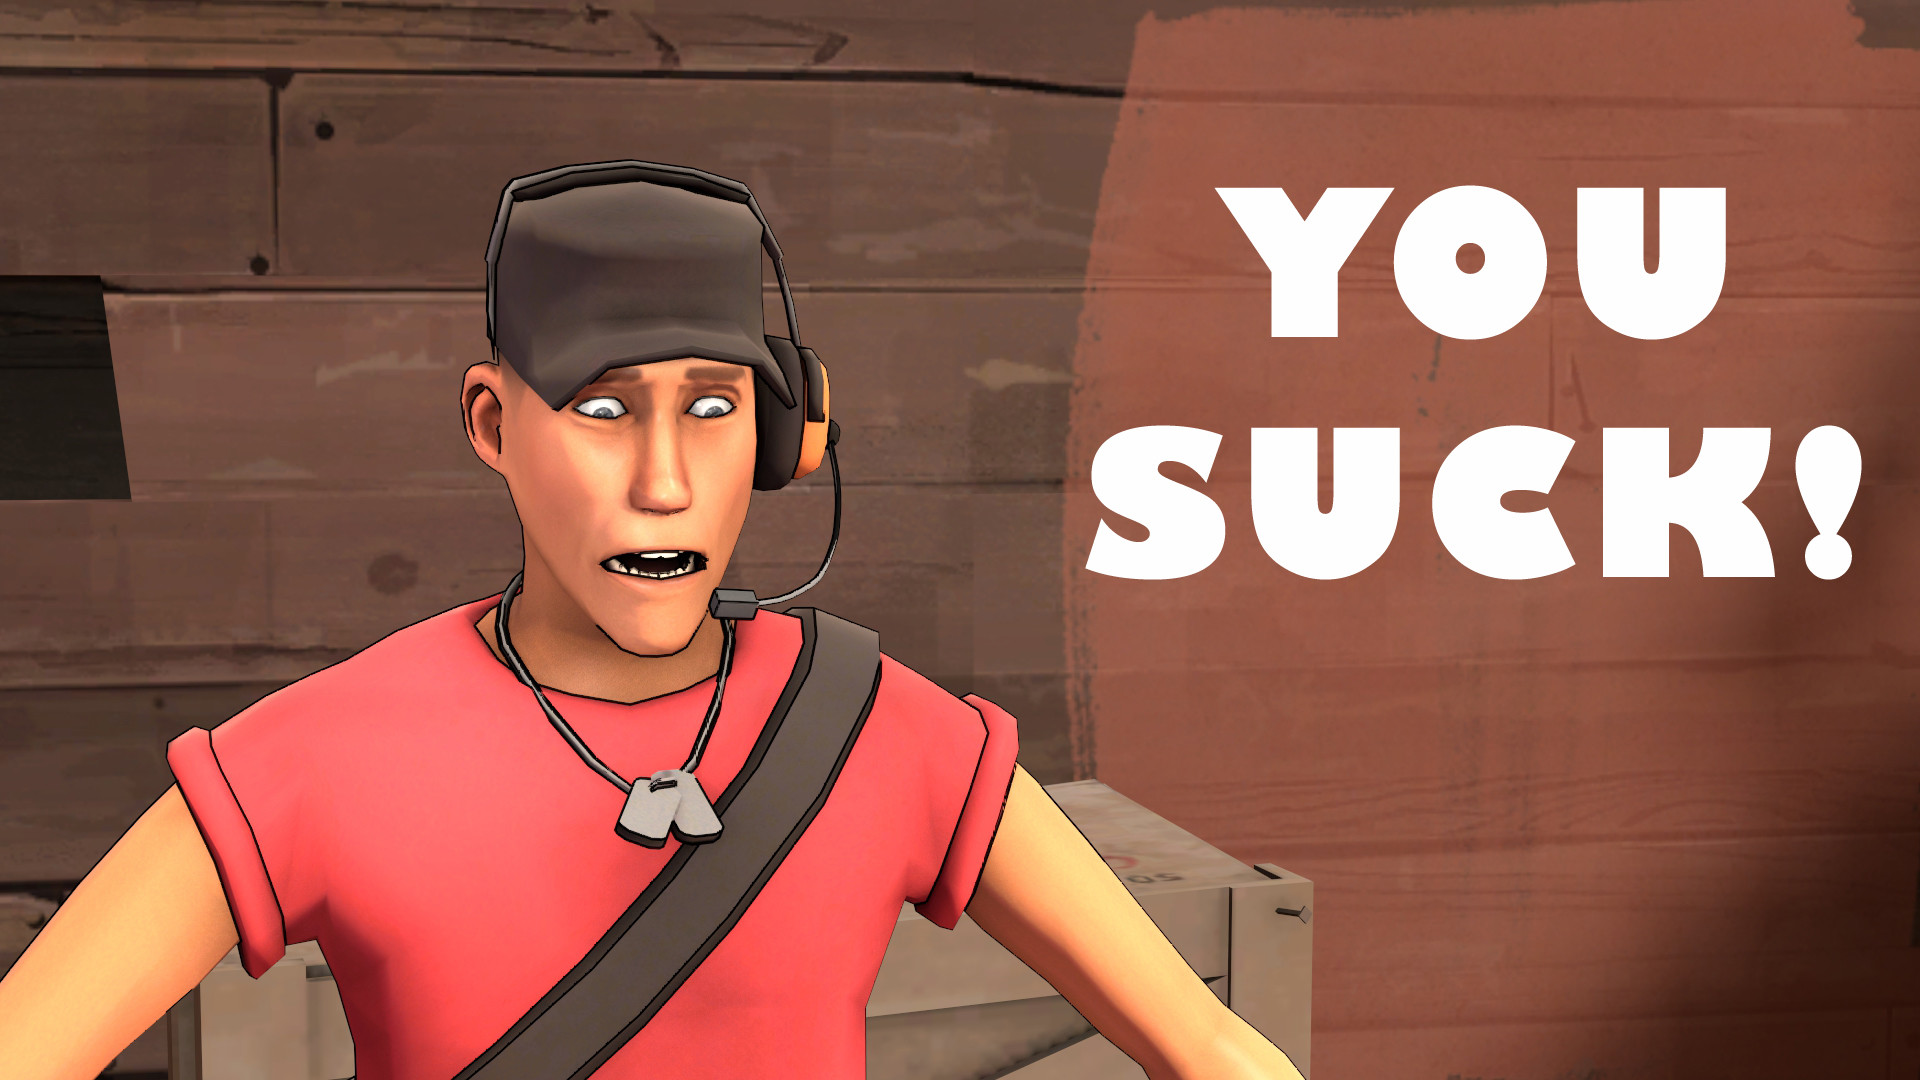 1920x1080 Team Fortress 2 HD Wallpaper | Background Image |  | ID:461832 -  Wallpaper Abyss